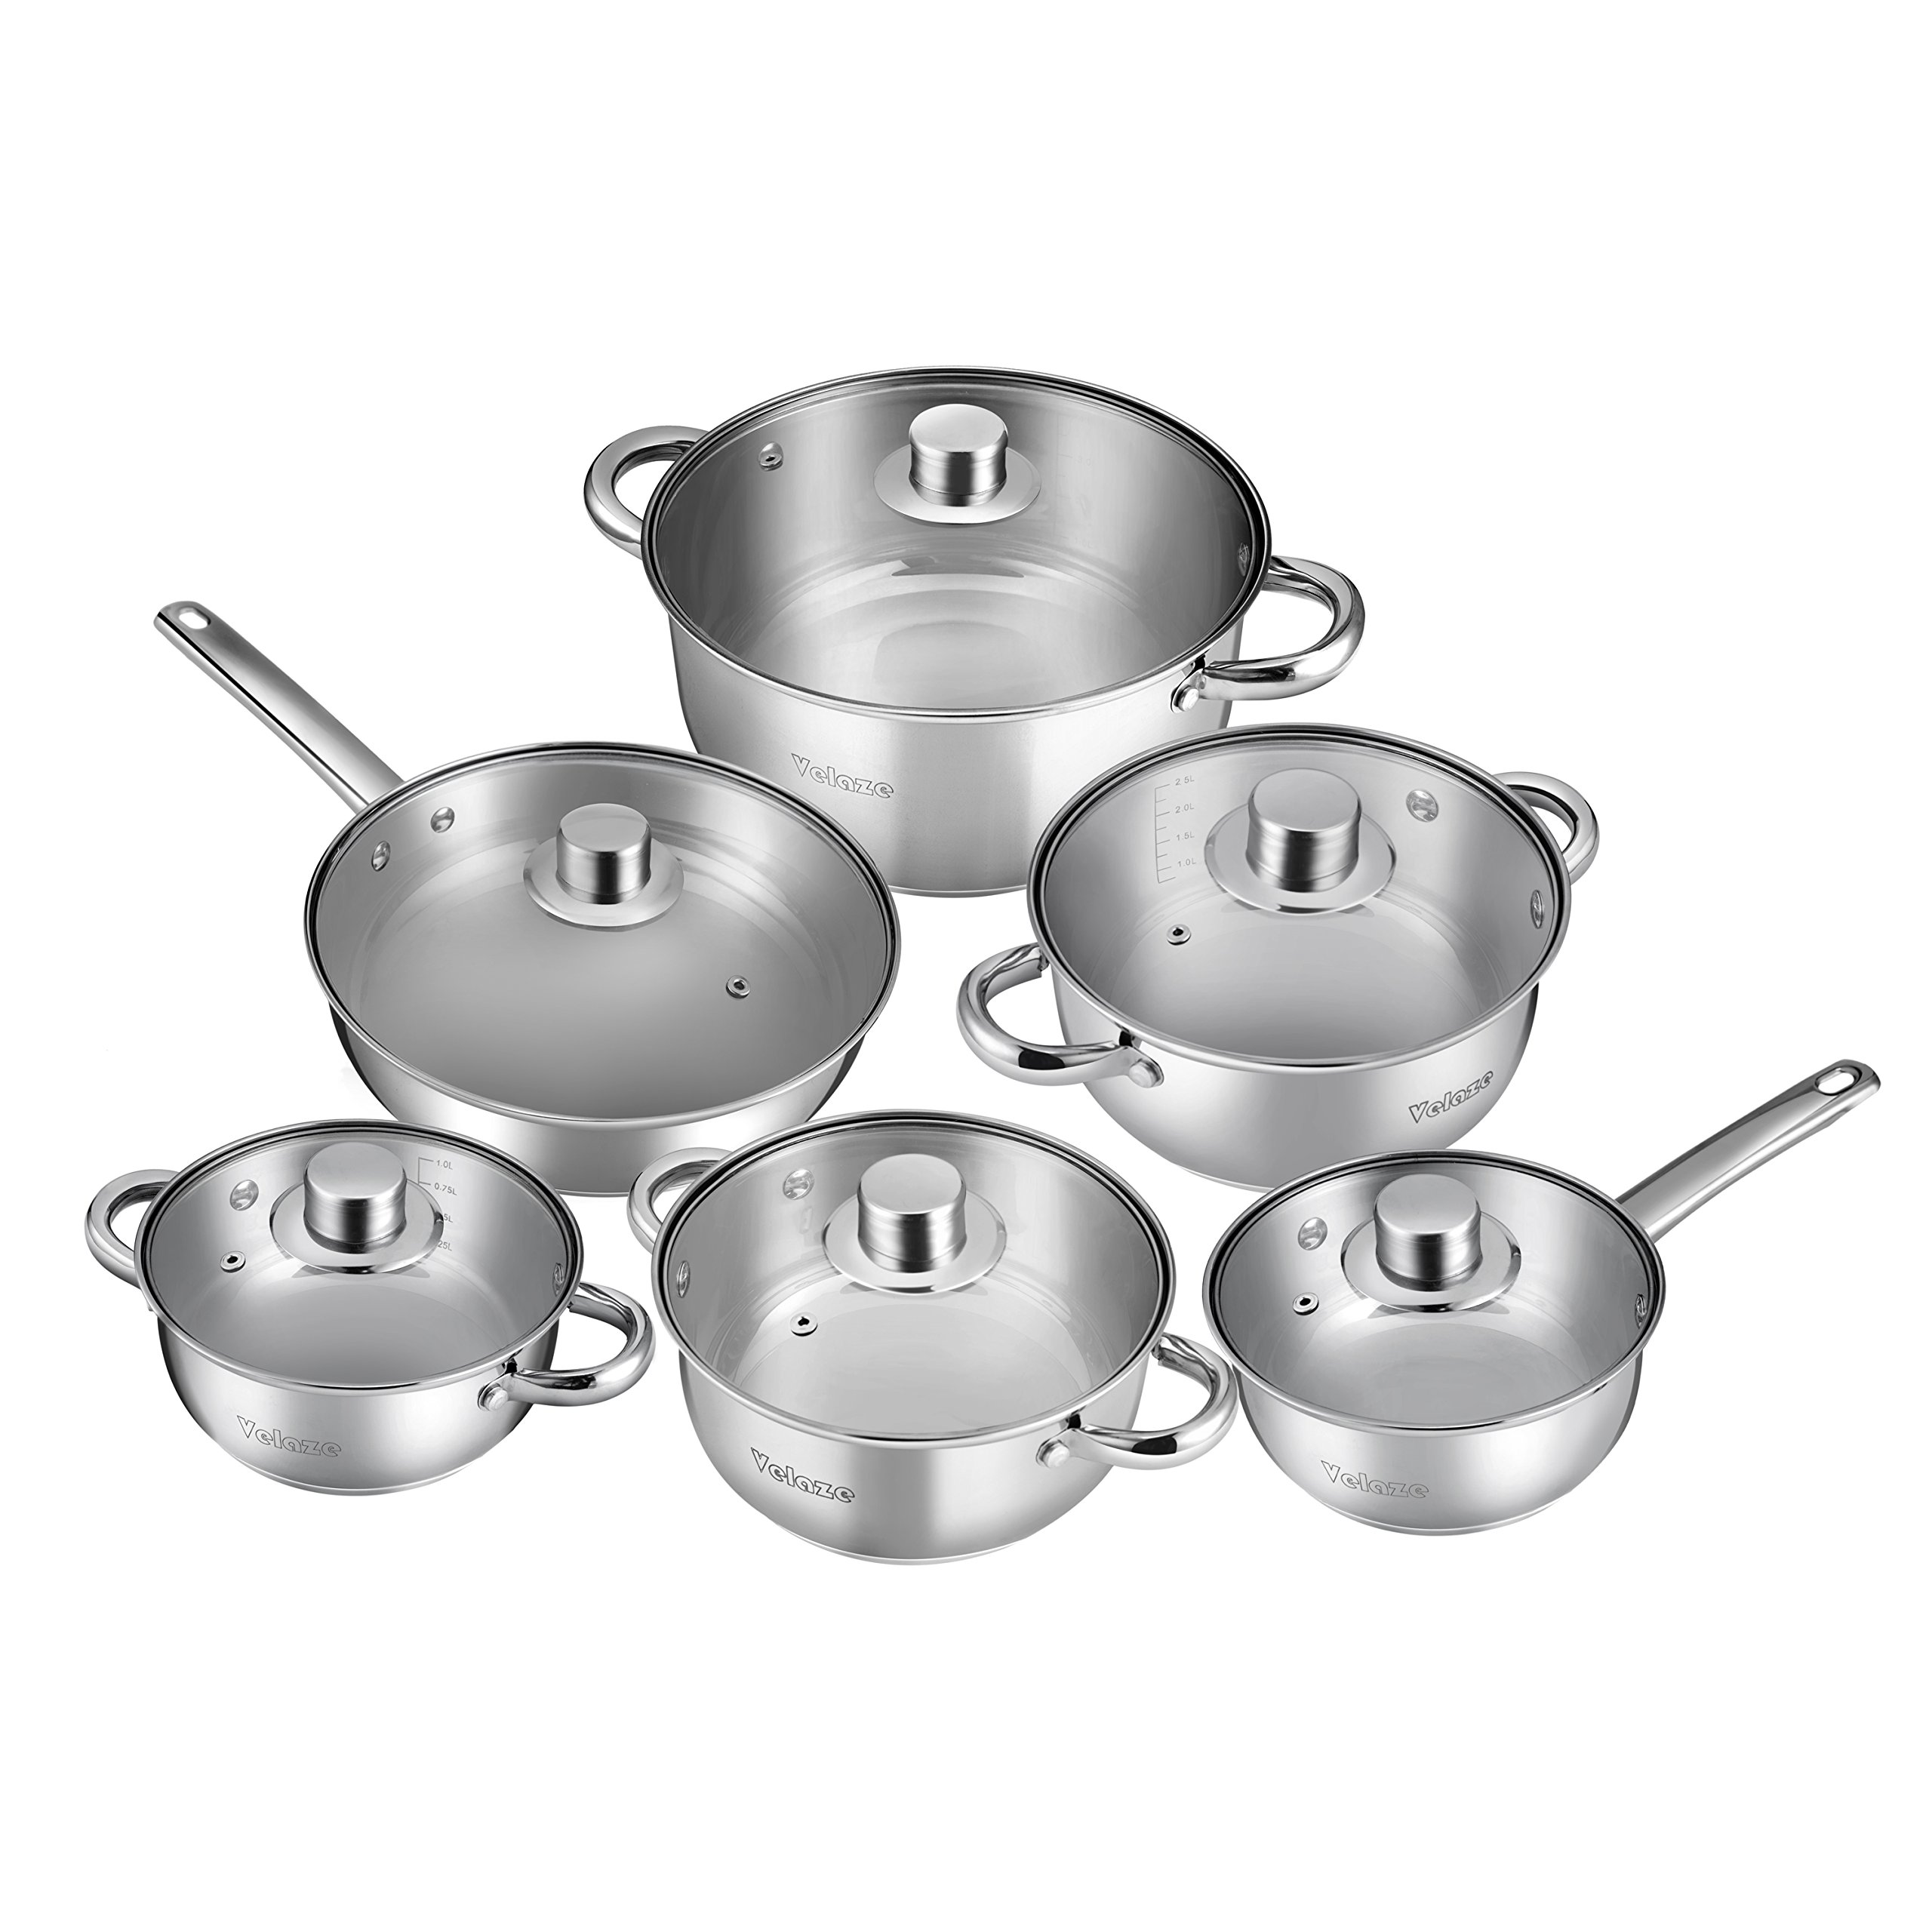 Velaze 12-Piece Stainless Steel Cookware Set, Classic Nonstick Pots & Pans Set, Dishwasher Safe Oven Safe, Silver